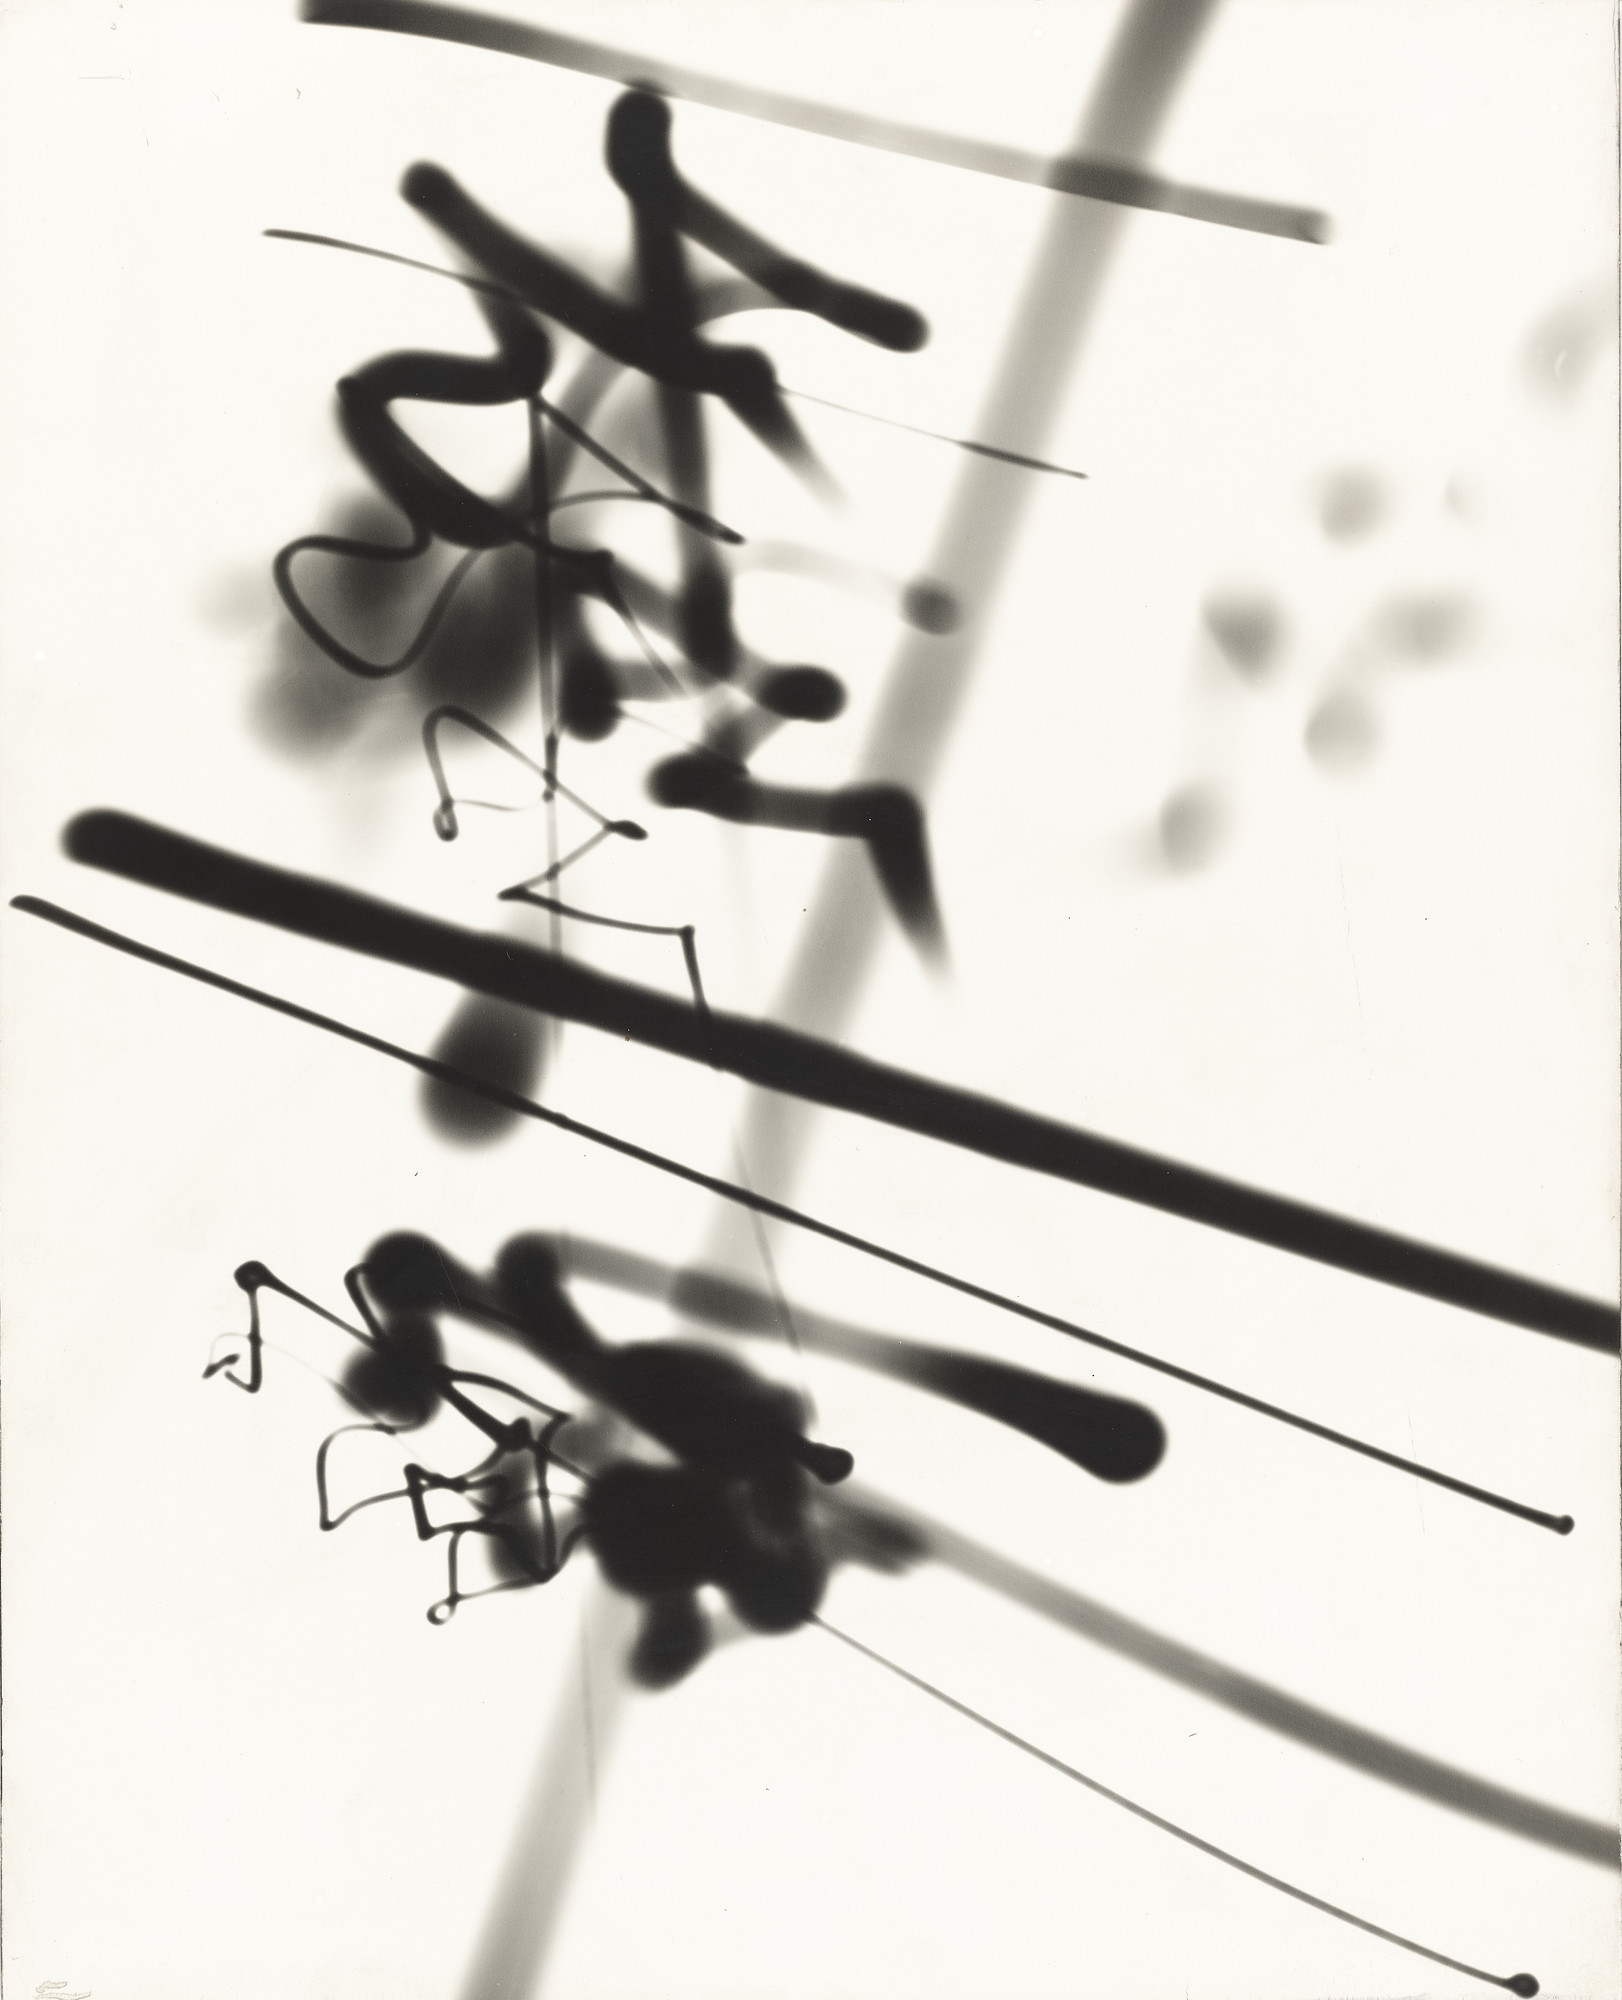 György Kepes. Abstraction. 1951